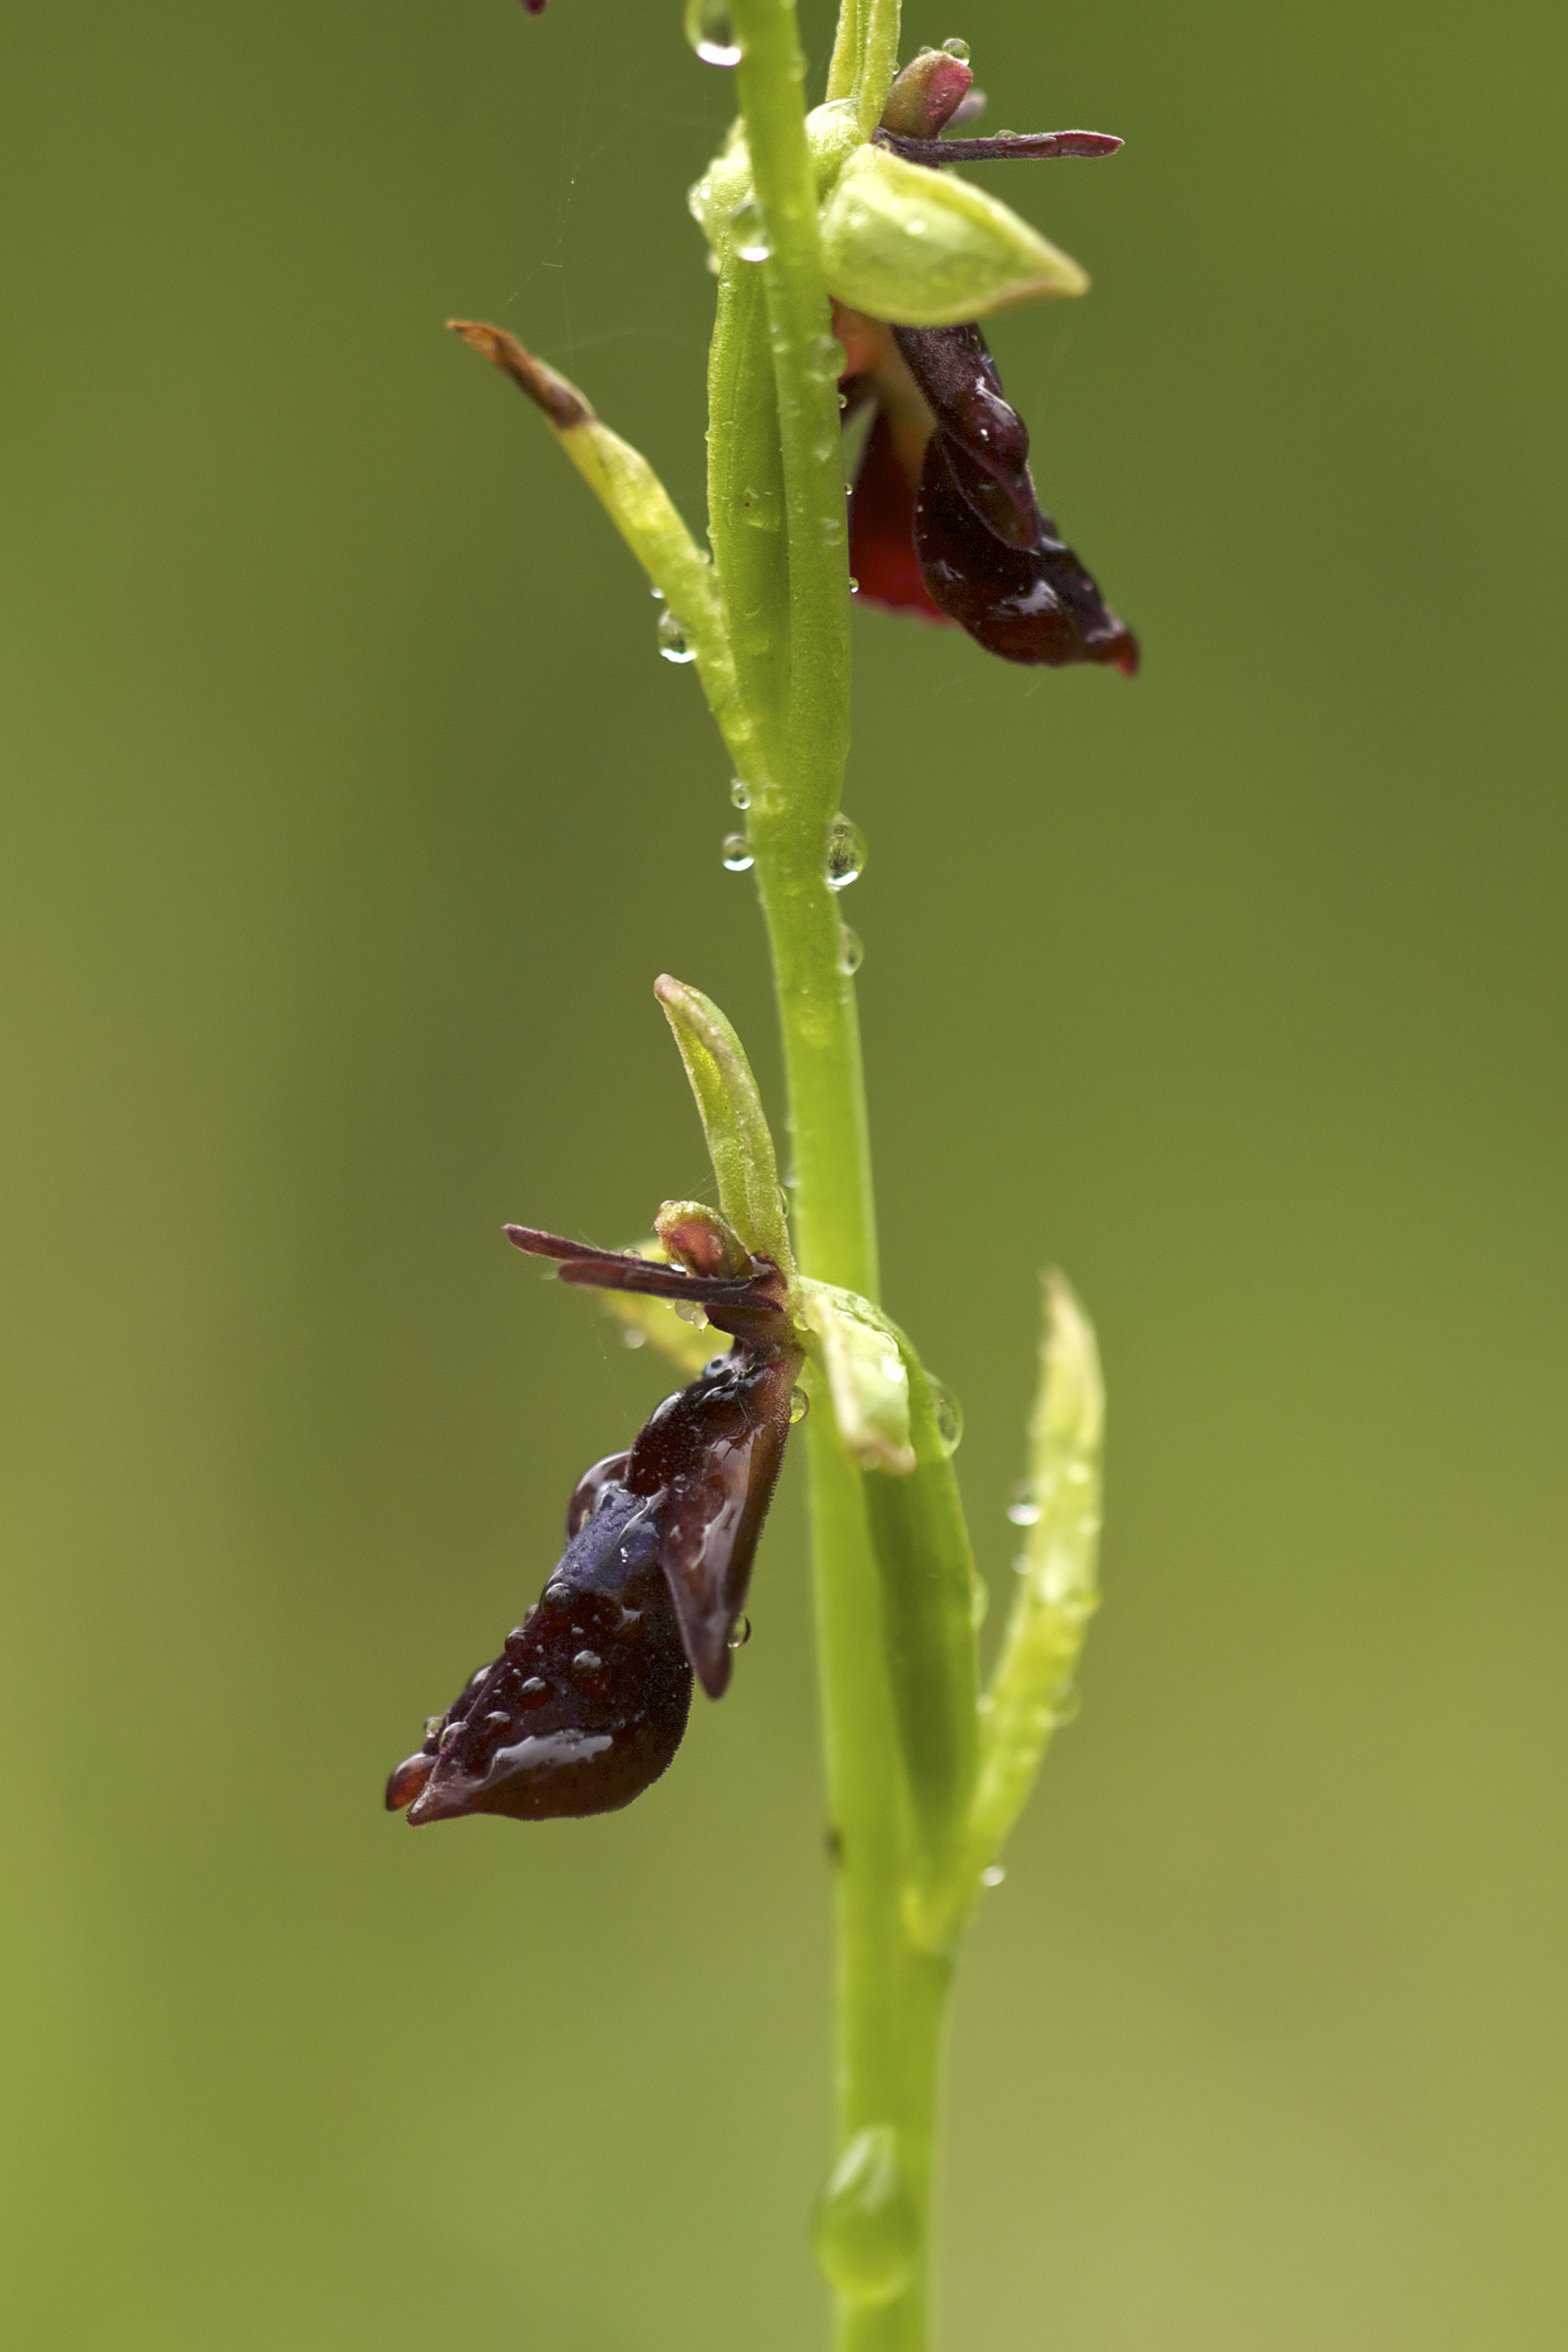 Fly orchid, photo by Jörg Hempel